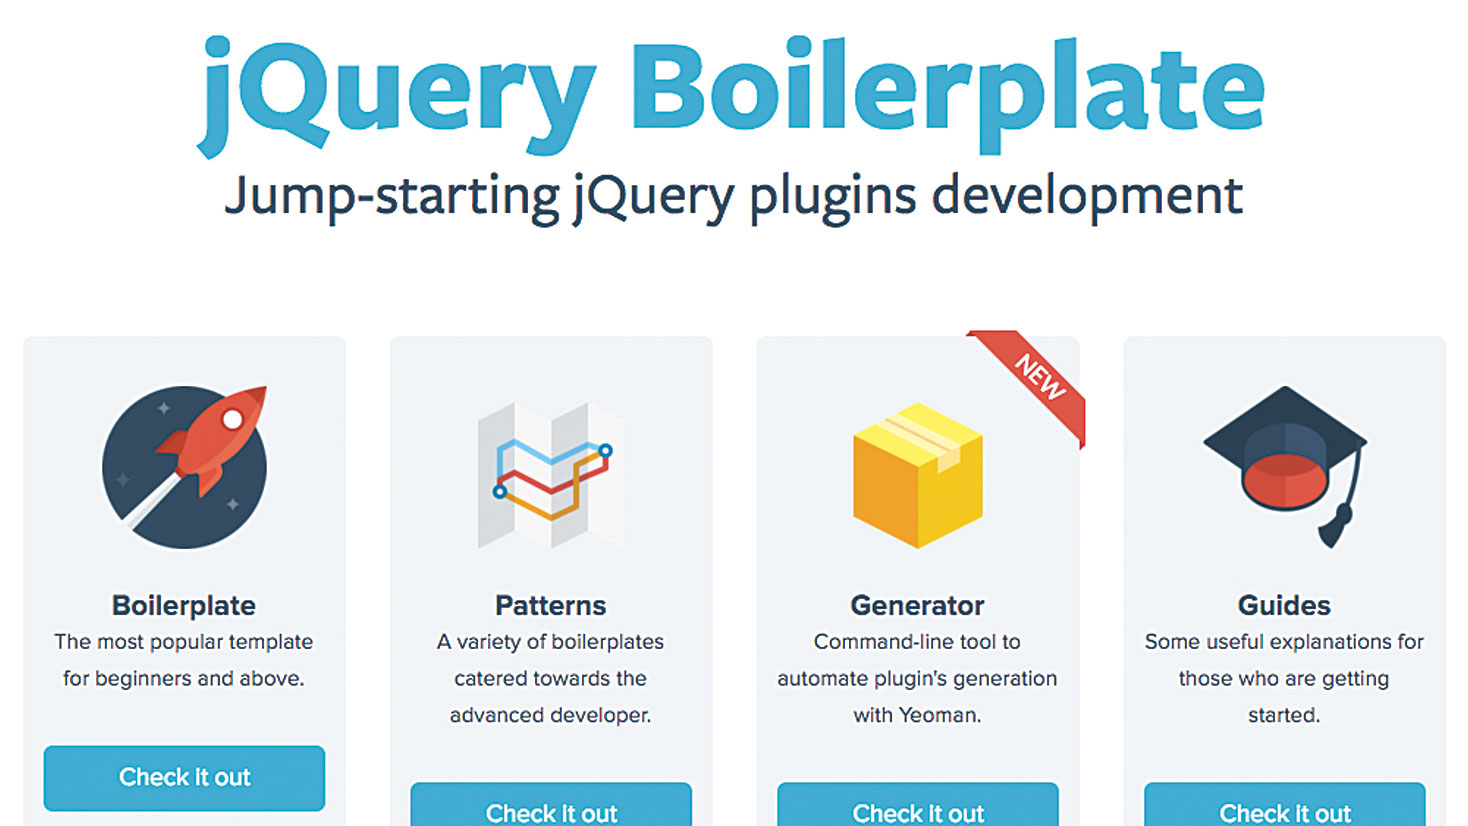 50 free web tools - jQuery Boilerplate